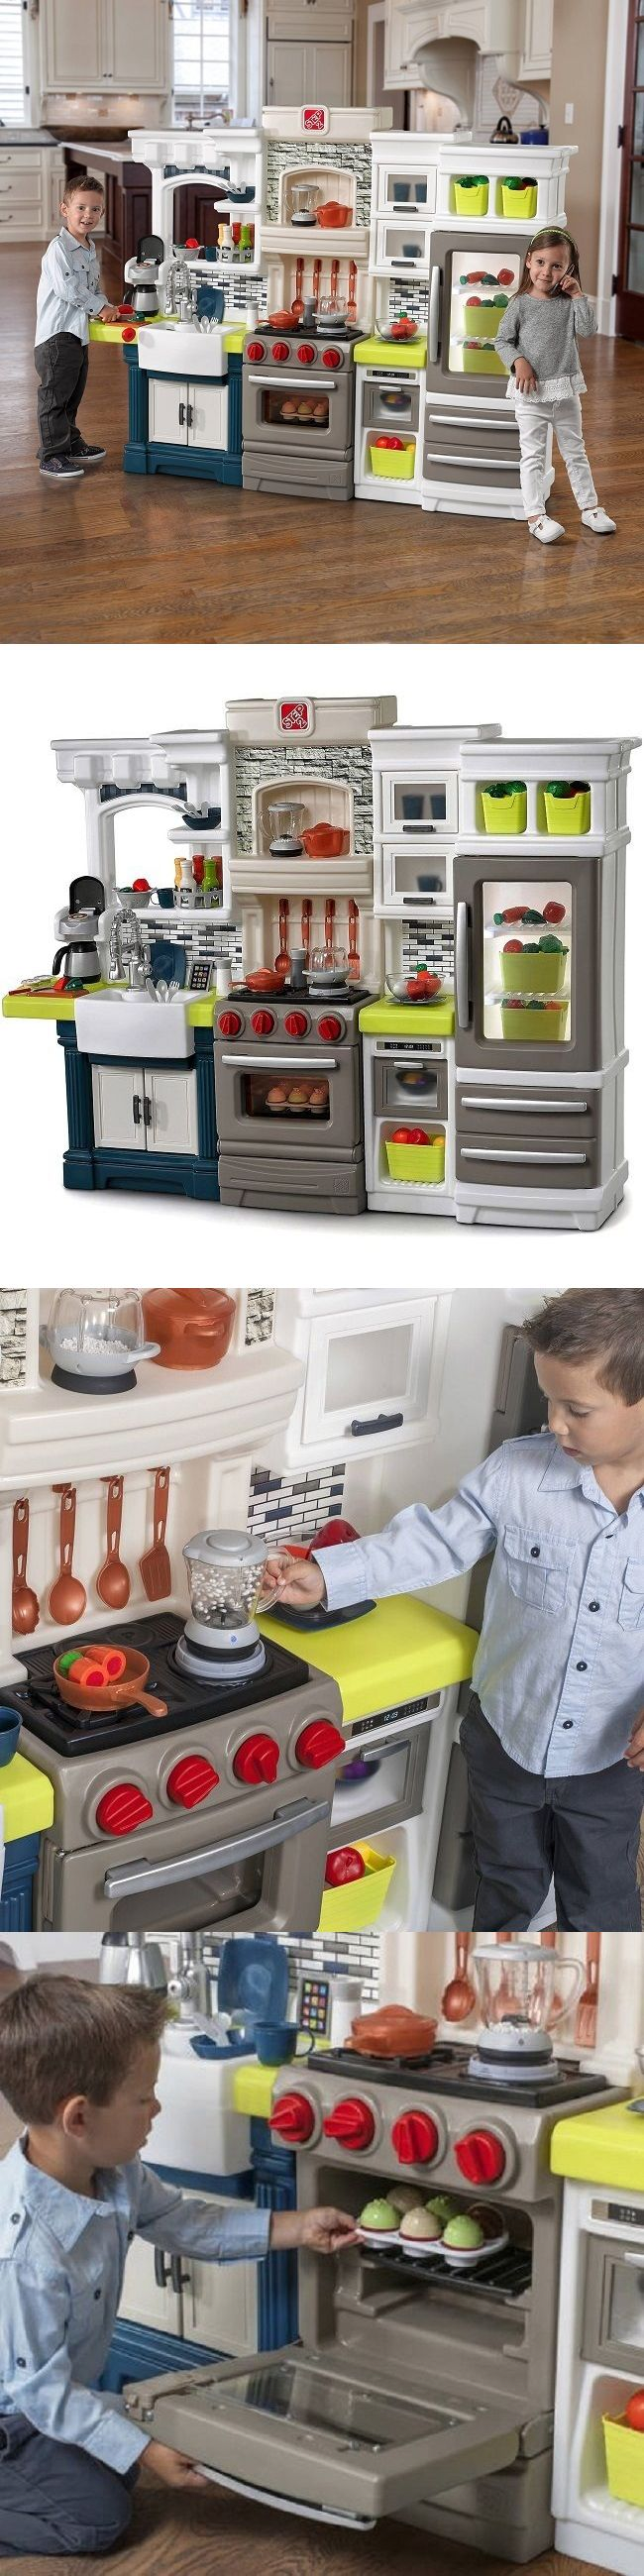 Kitchens 158746: Kitchen Playset W Accessories Step2 Large Tall Kids Toys Plastic Play Set Lights -> BUY IT NOW ONLY: $302.99 on eBay!